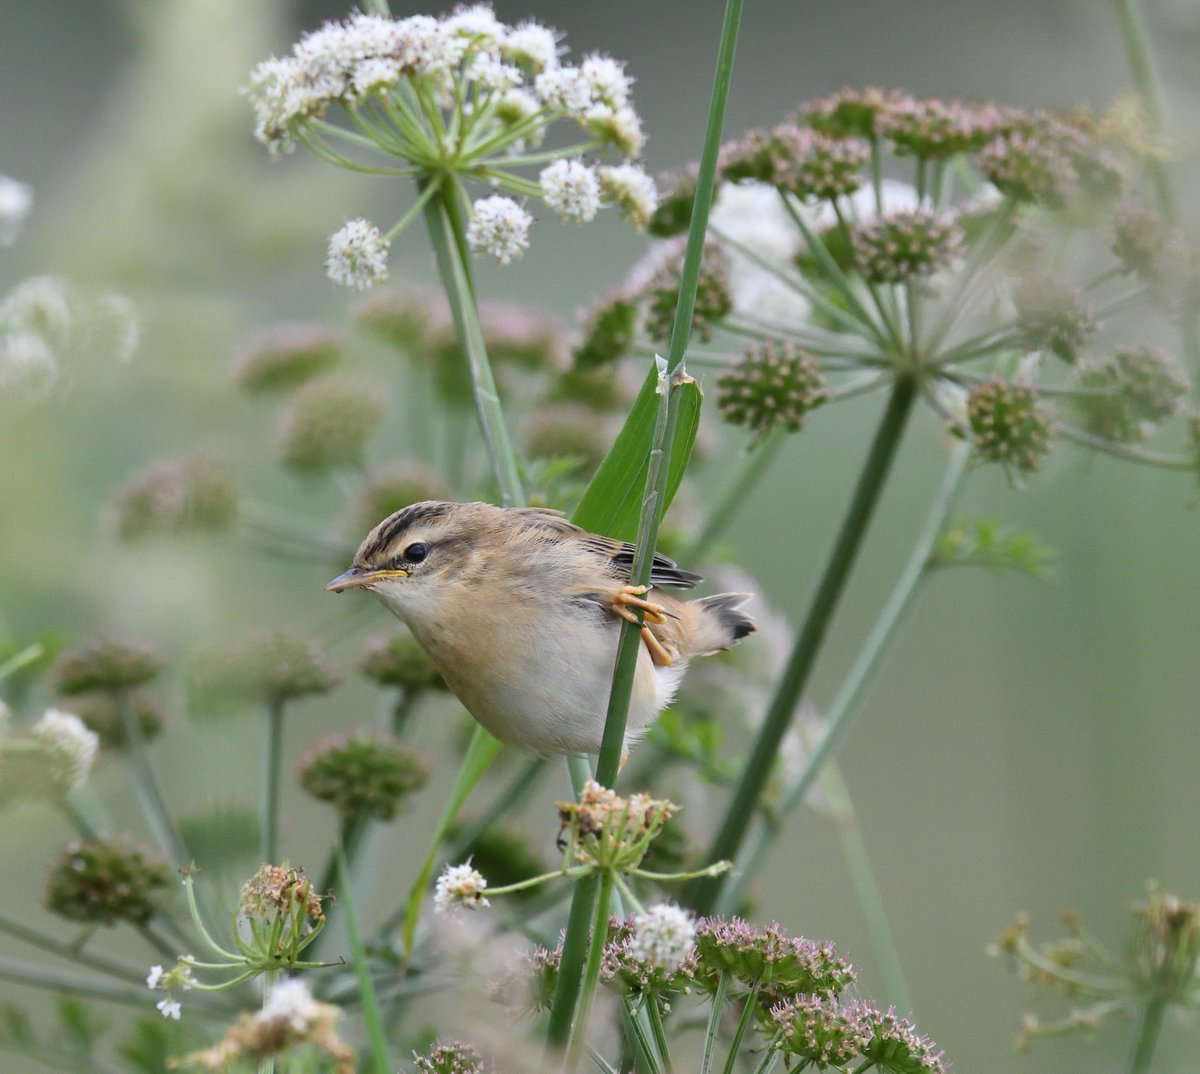 Another joy was watching this young #SedgeWarbler finding its way in the world at RSPB #Radipole #Weymouth #Dorset <br>http://pic.twitter.com/h8Q7pbf88G